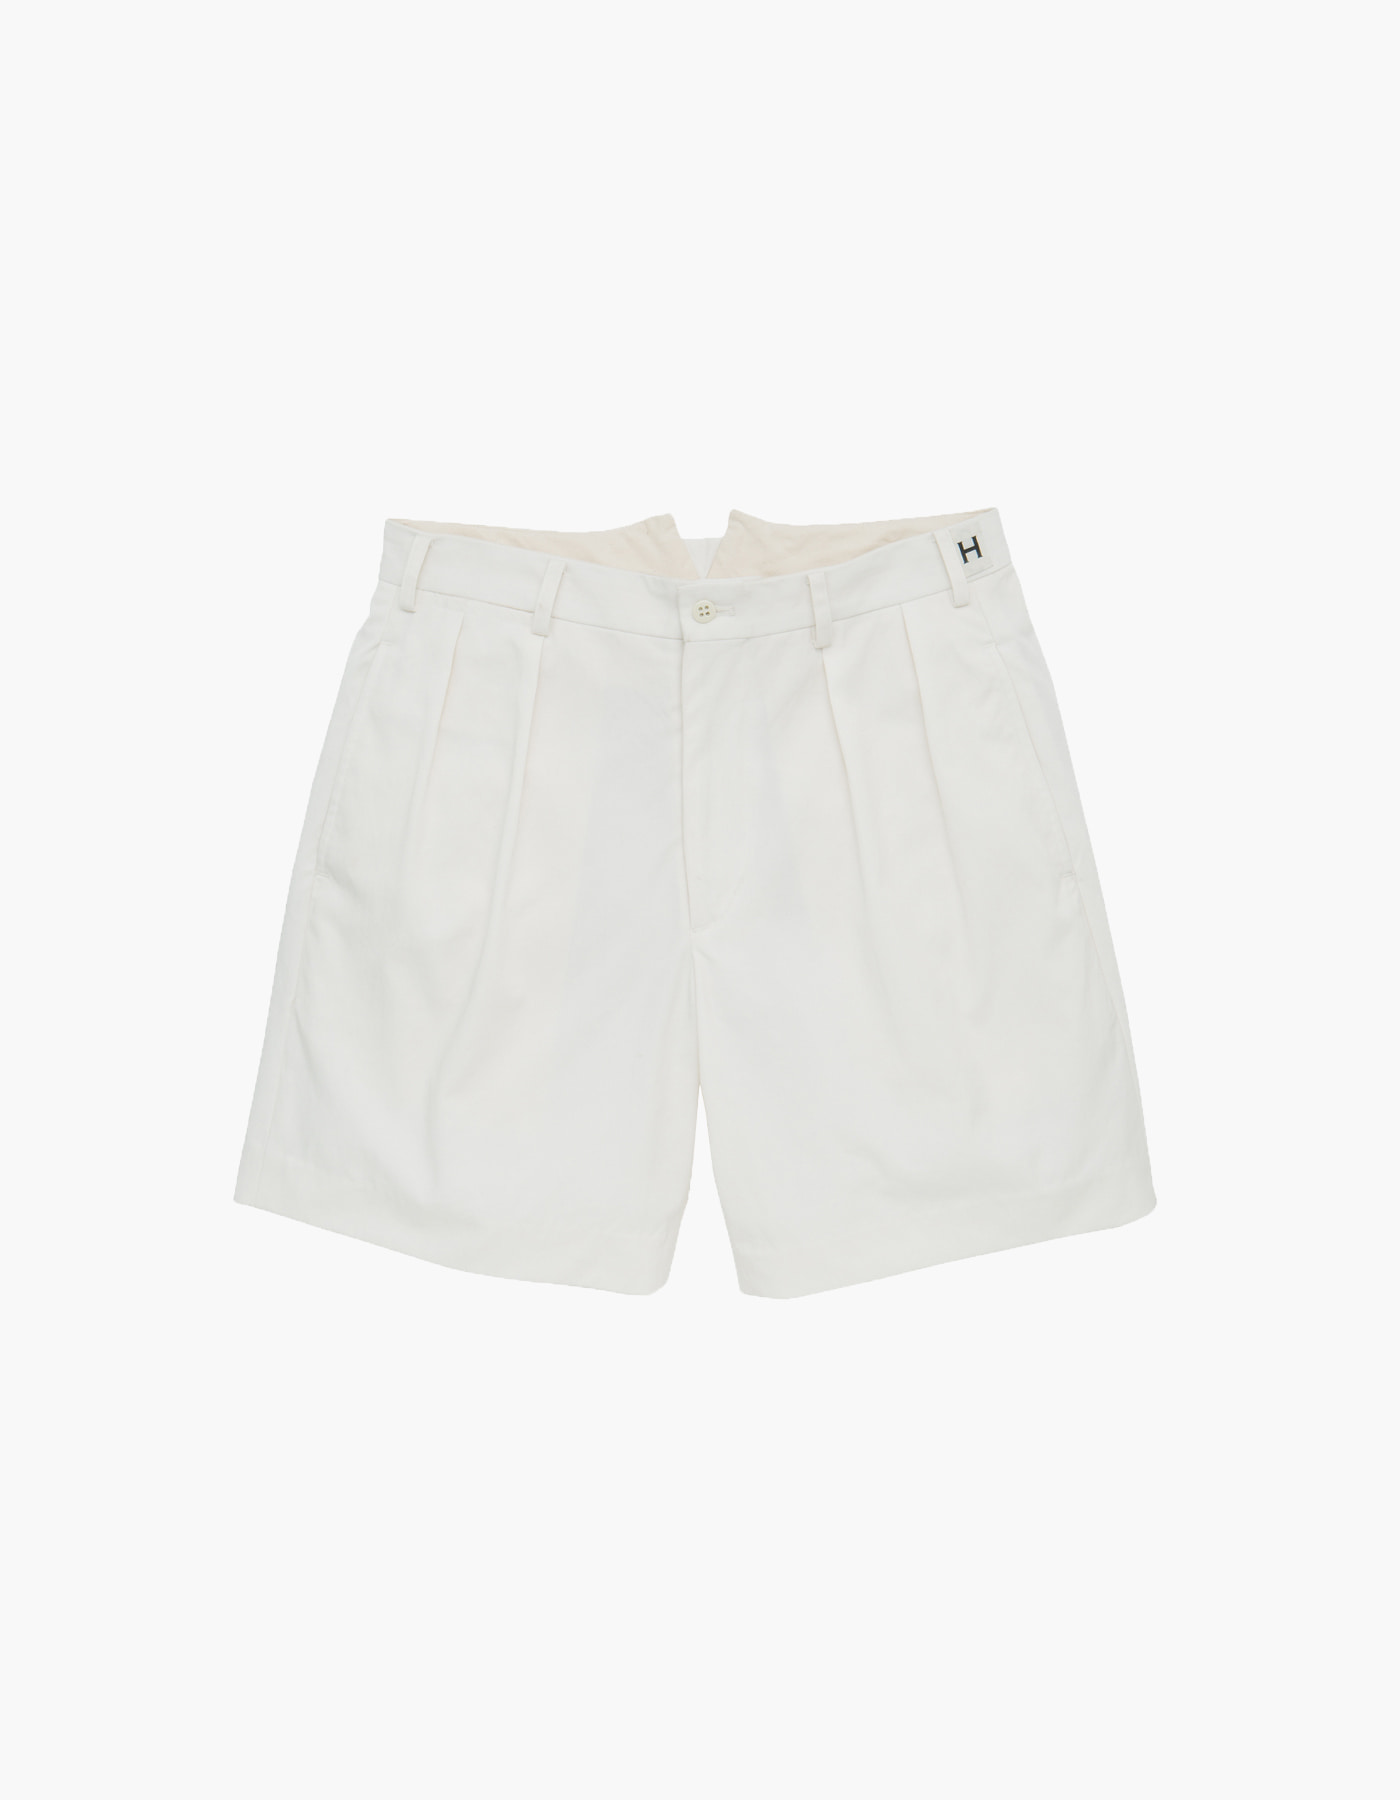 NYLON CHINO CLOTH SHORTS / WHITE